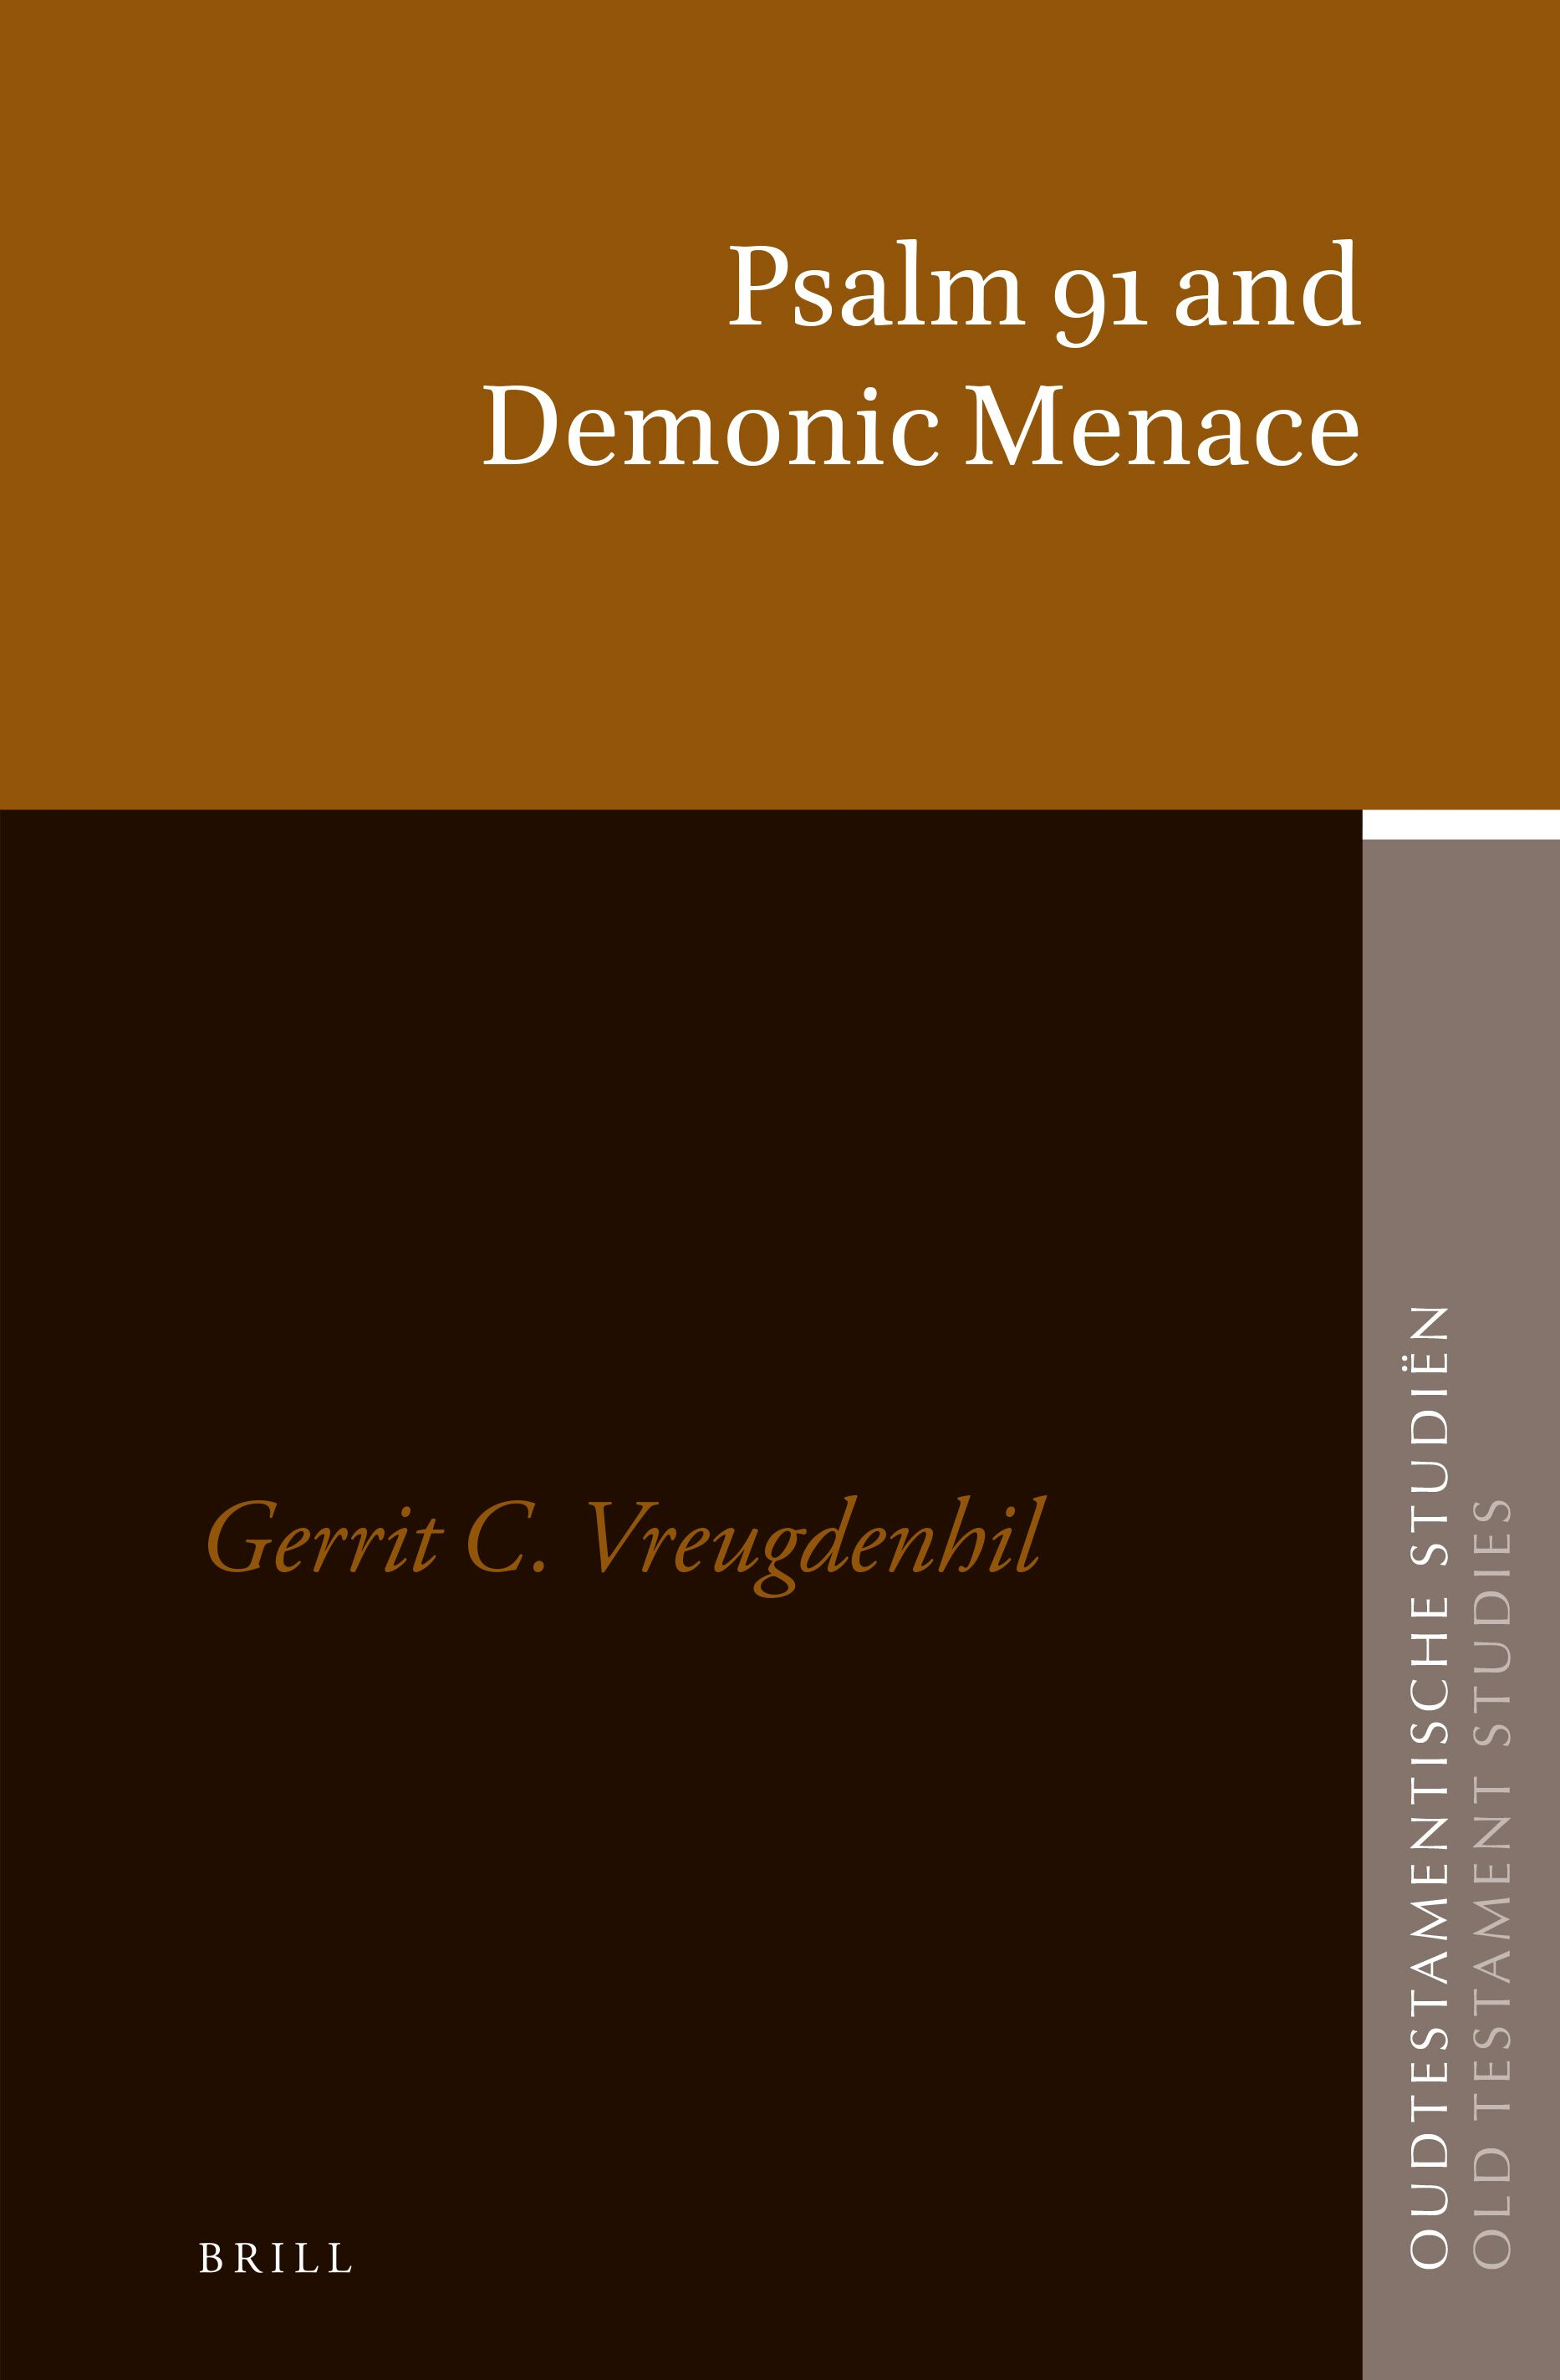 Chapter 20 Introduction in Psalm 920 and Demonic Menace